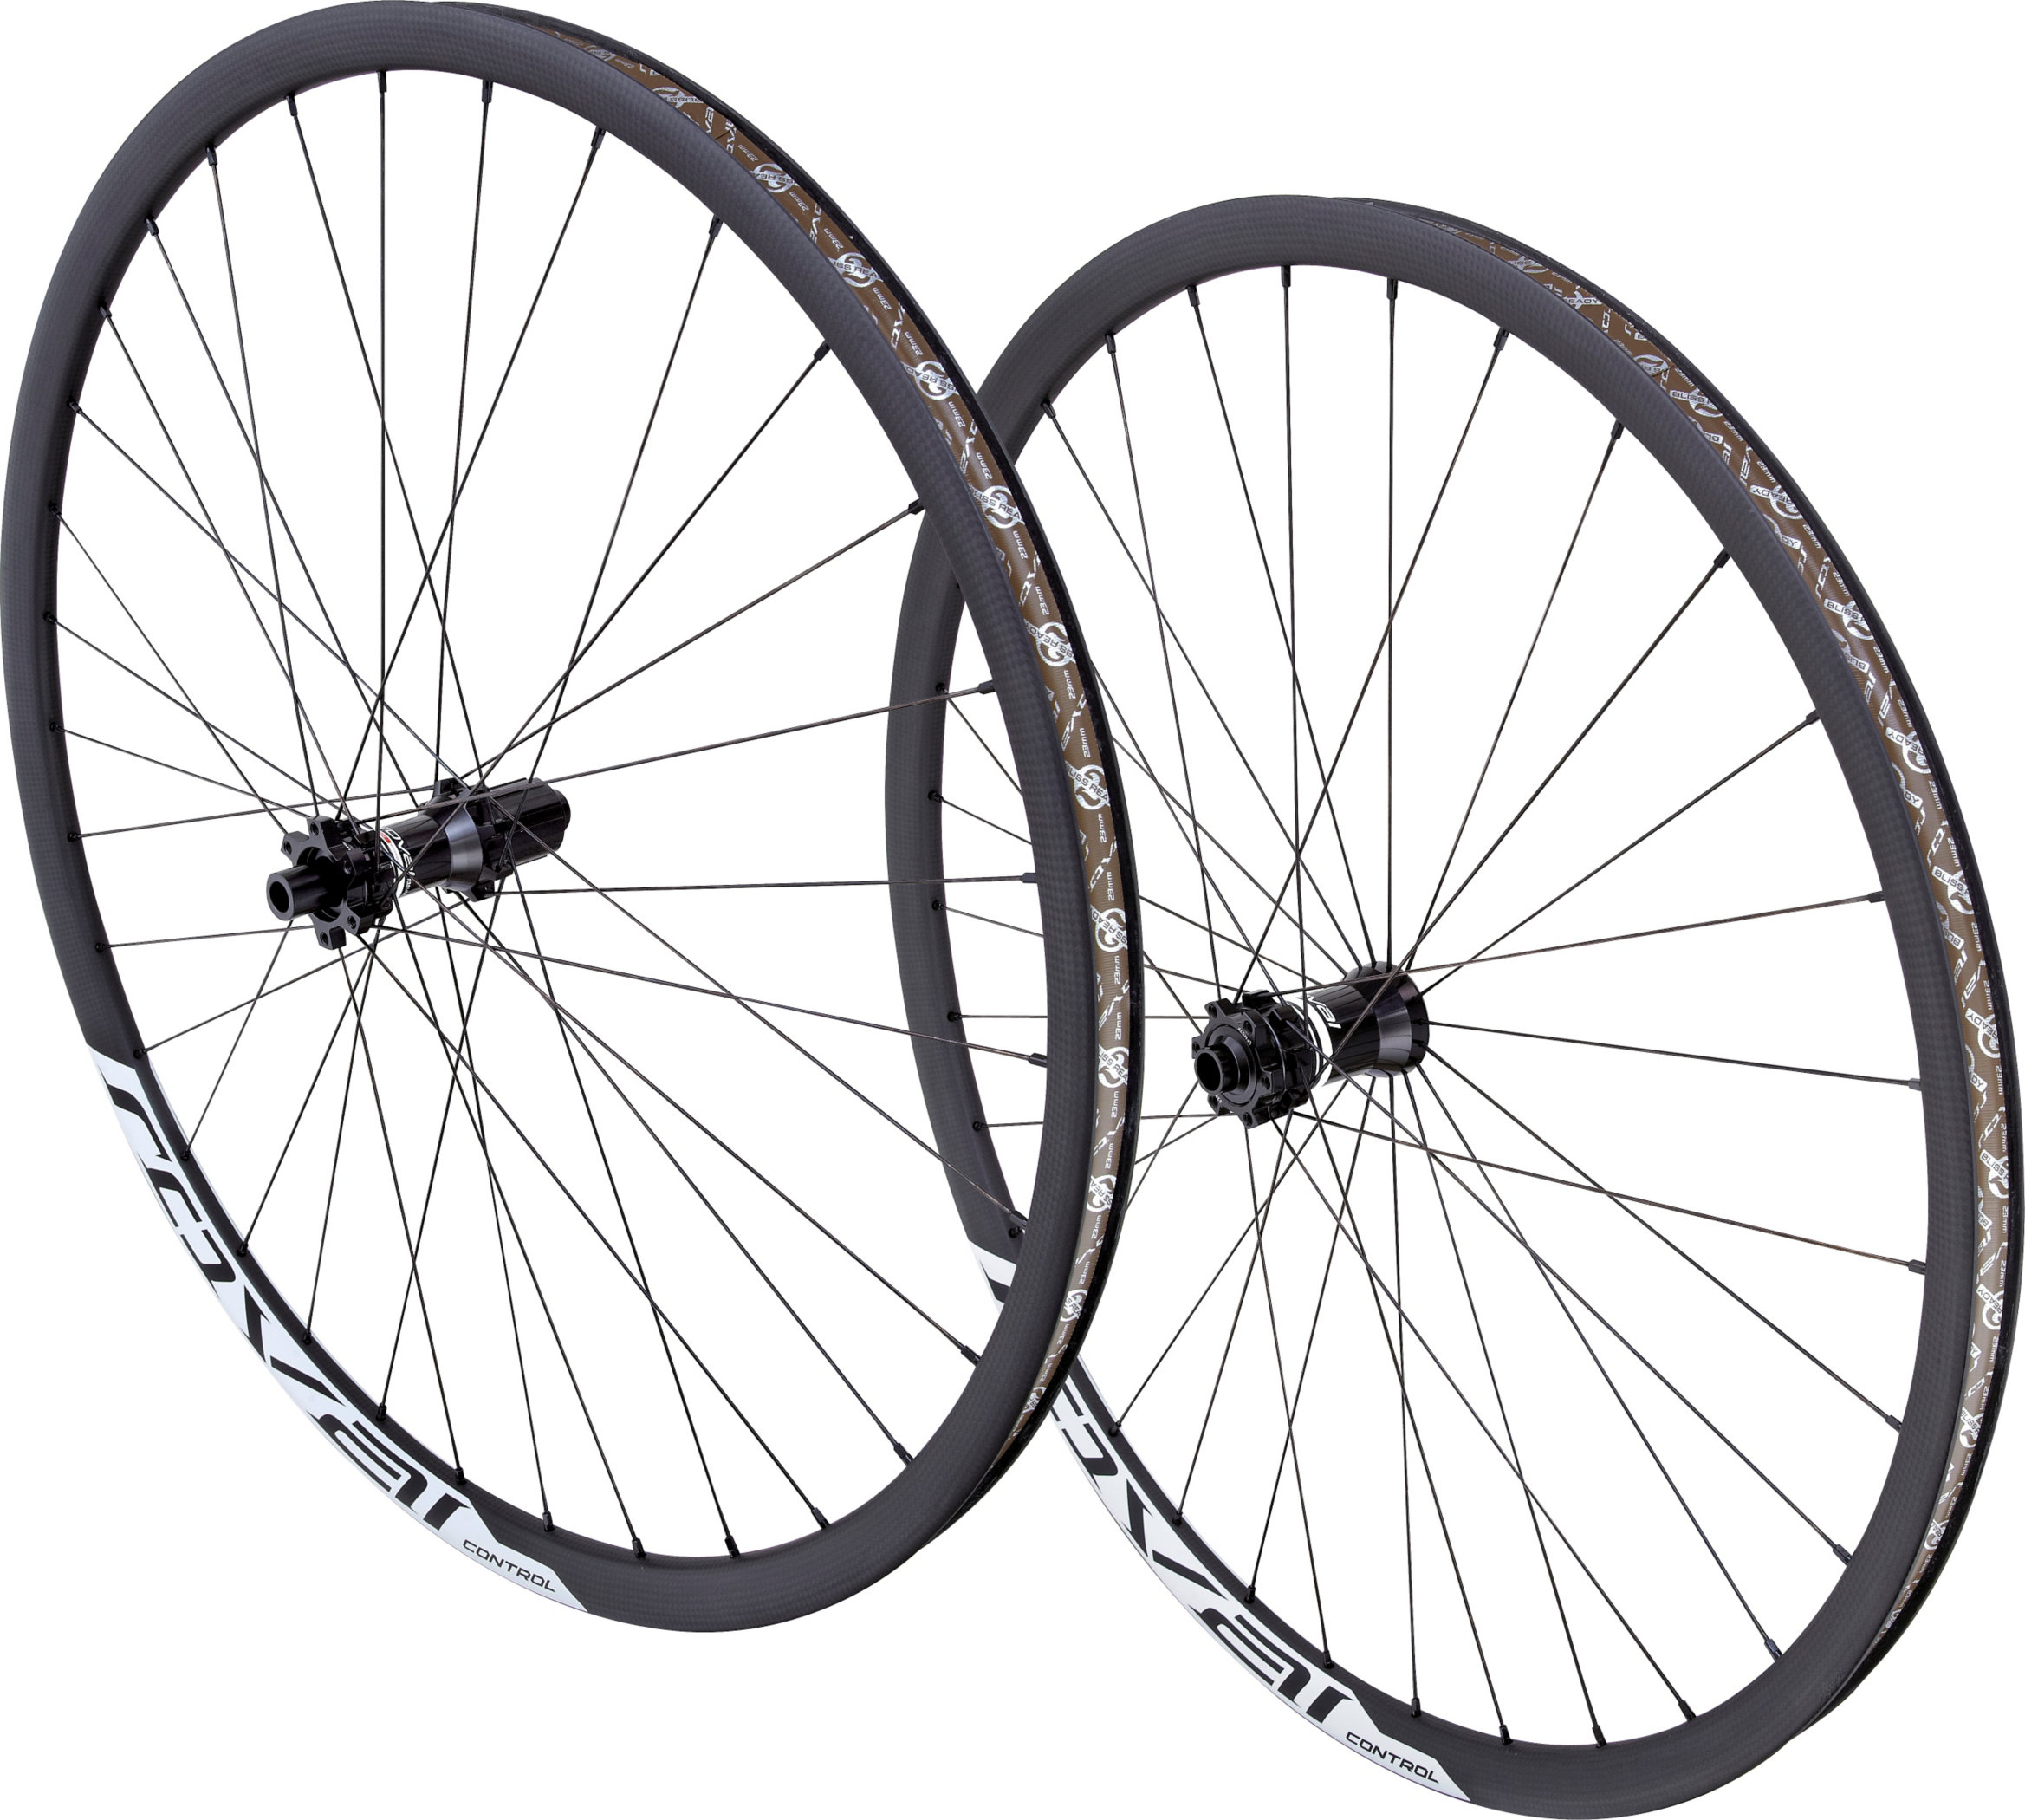 SPECIALIZED CONTROL 29 CARBON WHEELSET CARB/WHT - Alpha Bikes